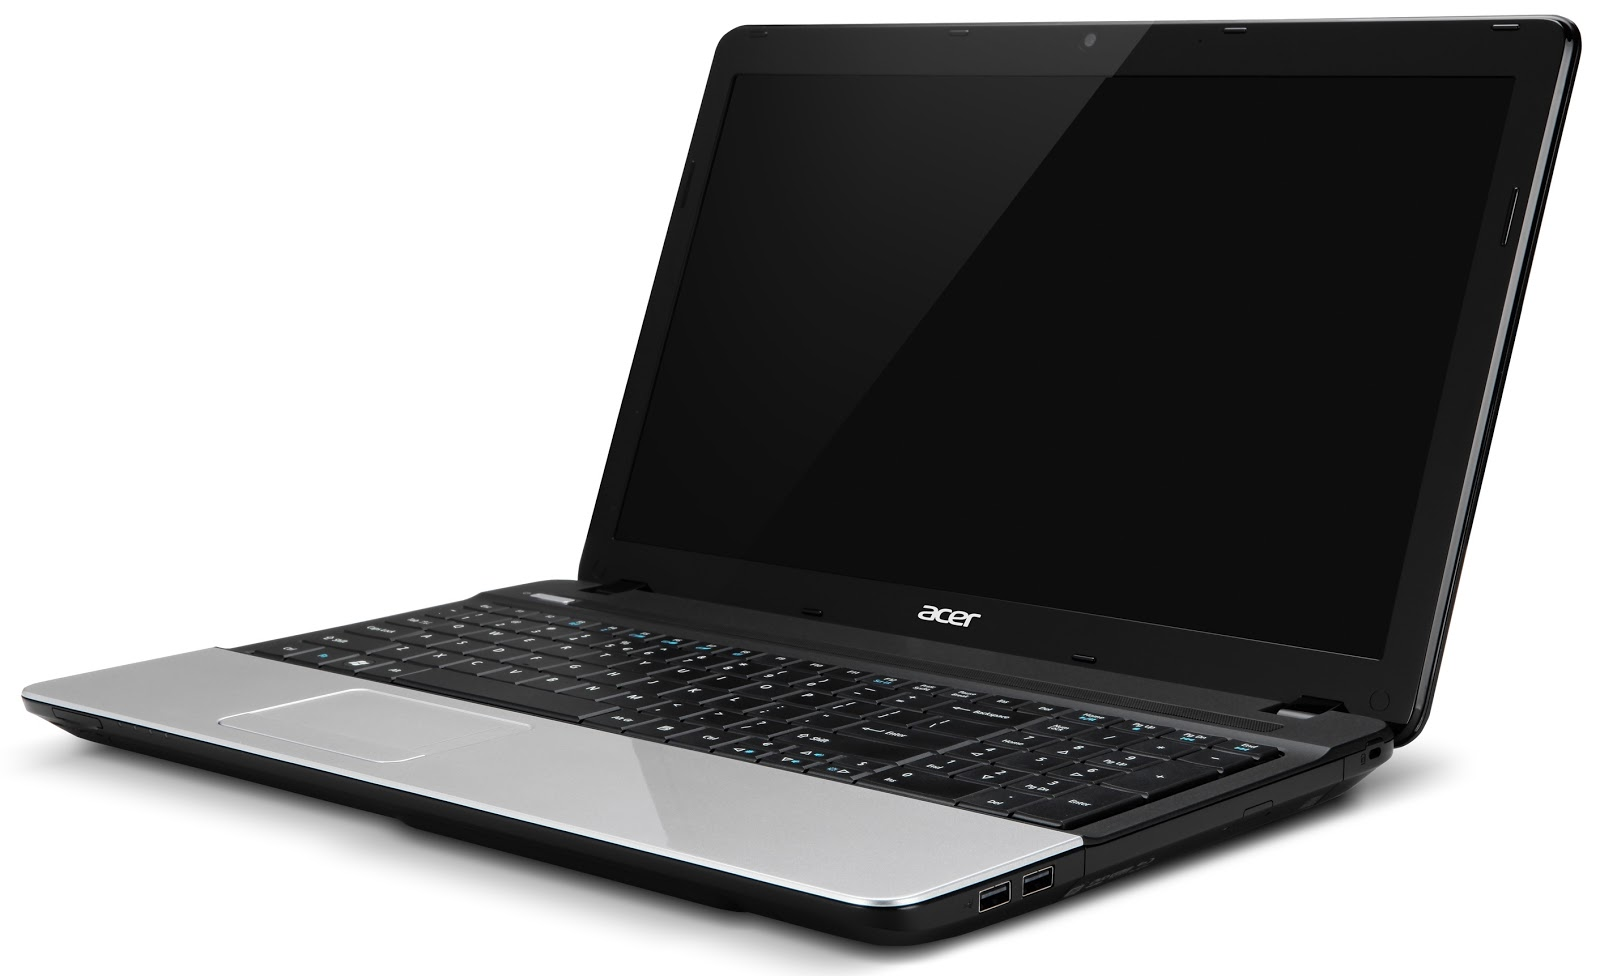 38a79a8e49054ac185c79276066e8aa6 likewise Acer Aspire E1 571g Drivers Download in addition Anybody Knows Why I Dont Have This On My Device Manager moreover Windows 10 additionally Dell Studio XPS Desktop PC Review Dell Studio Xps Desktop Pc Page 3. on dell studio xps system